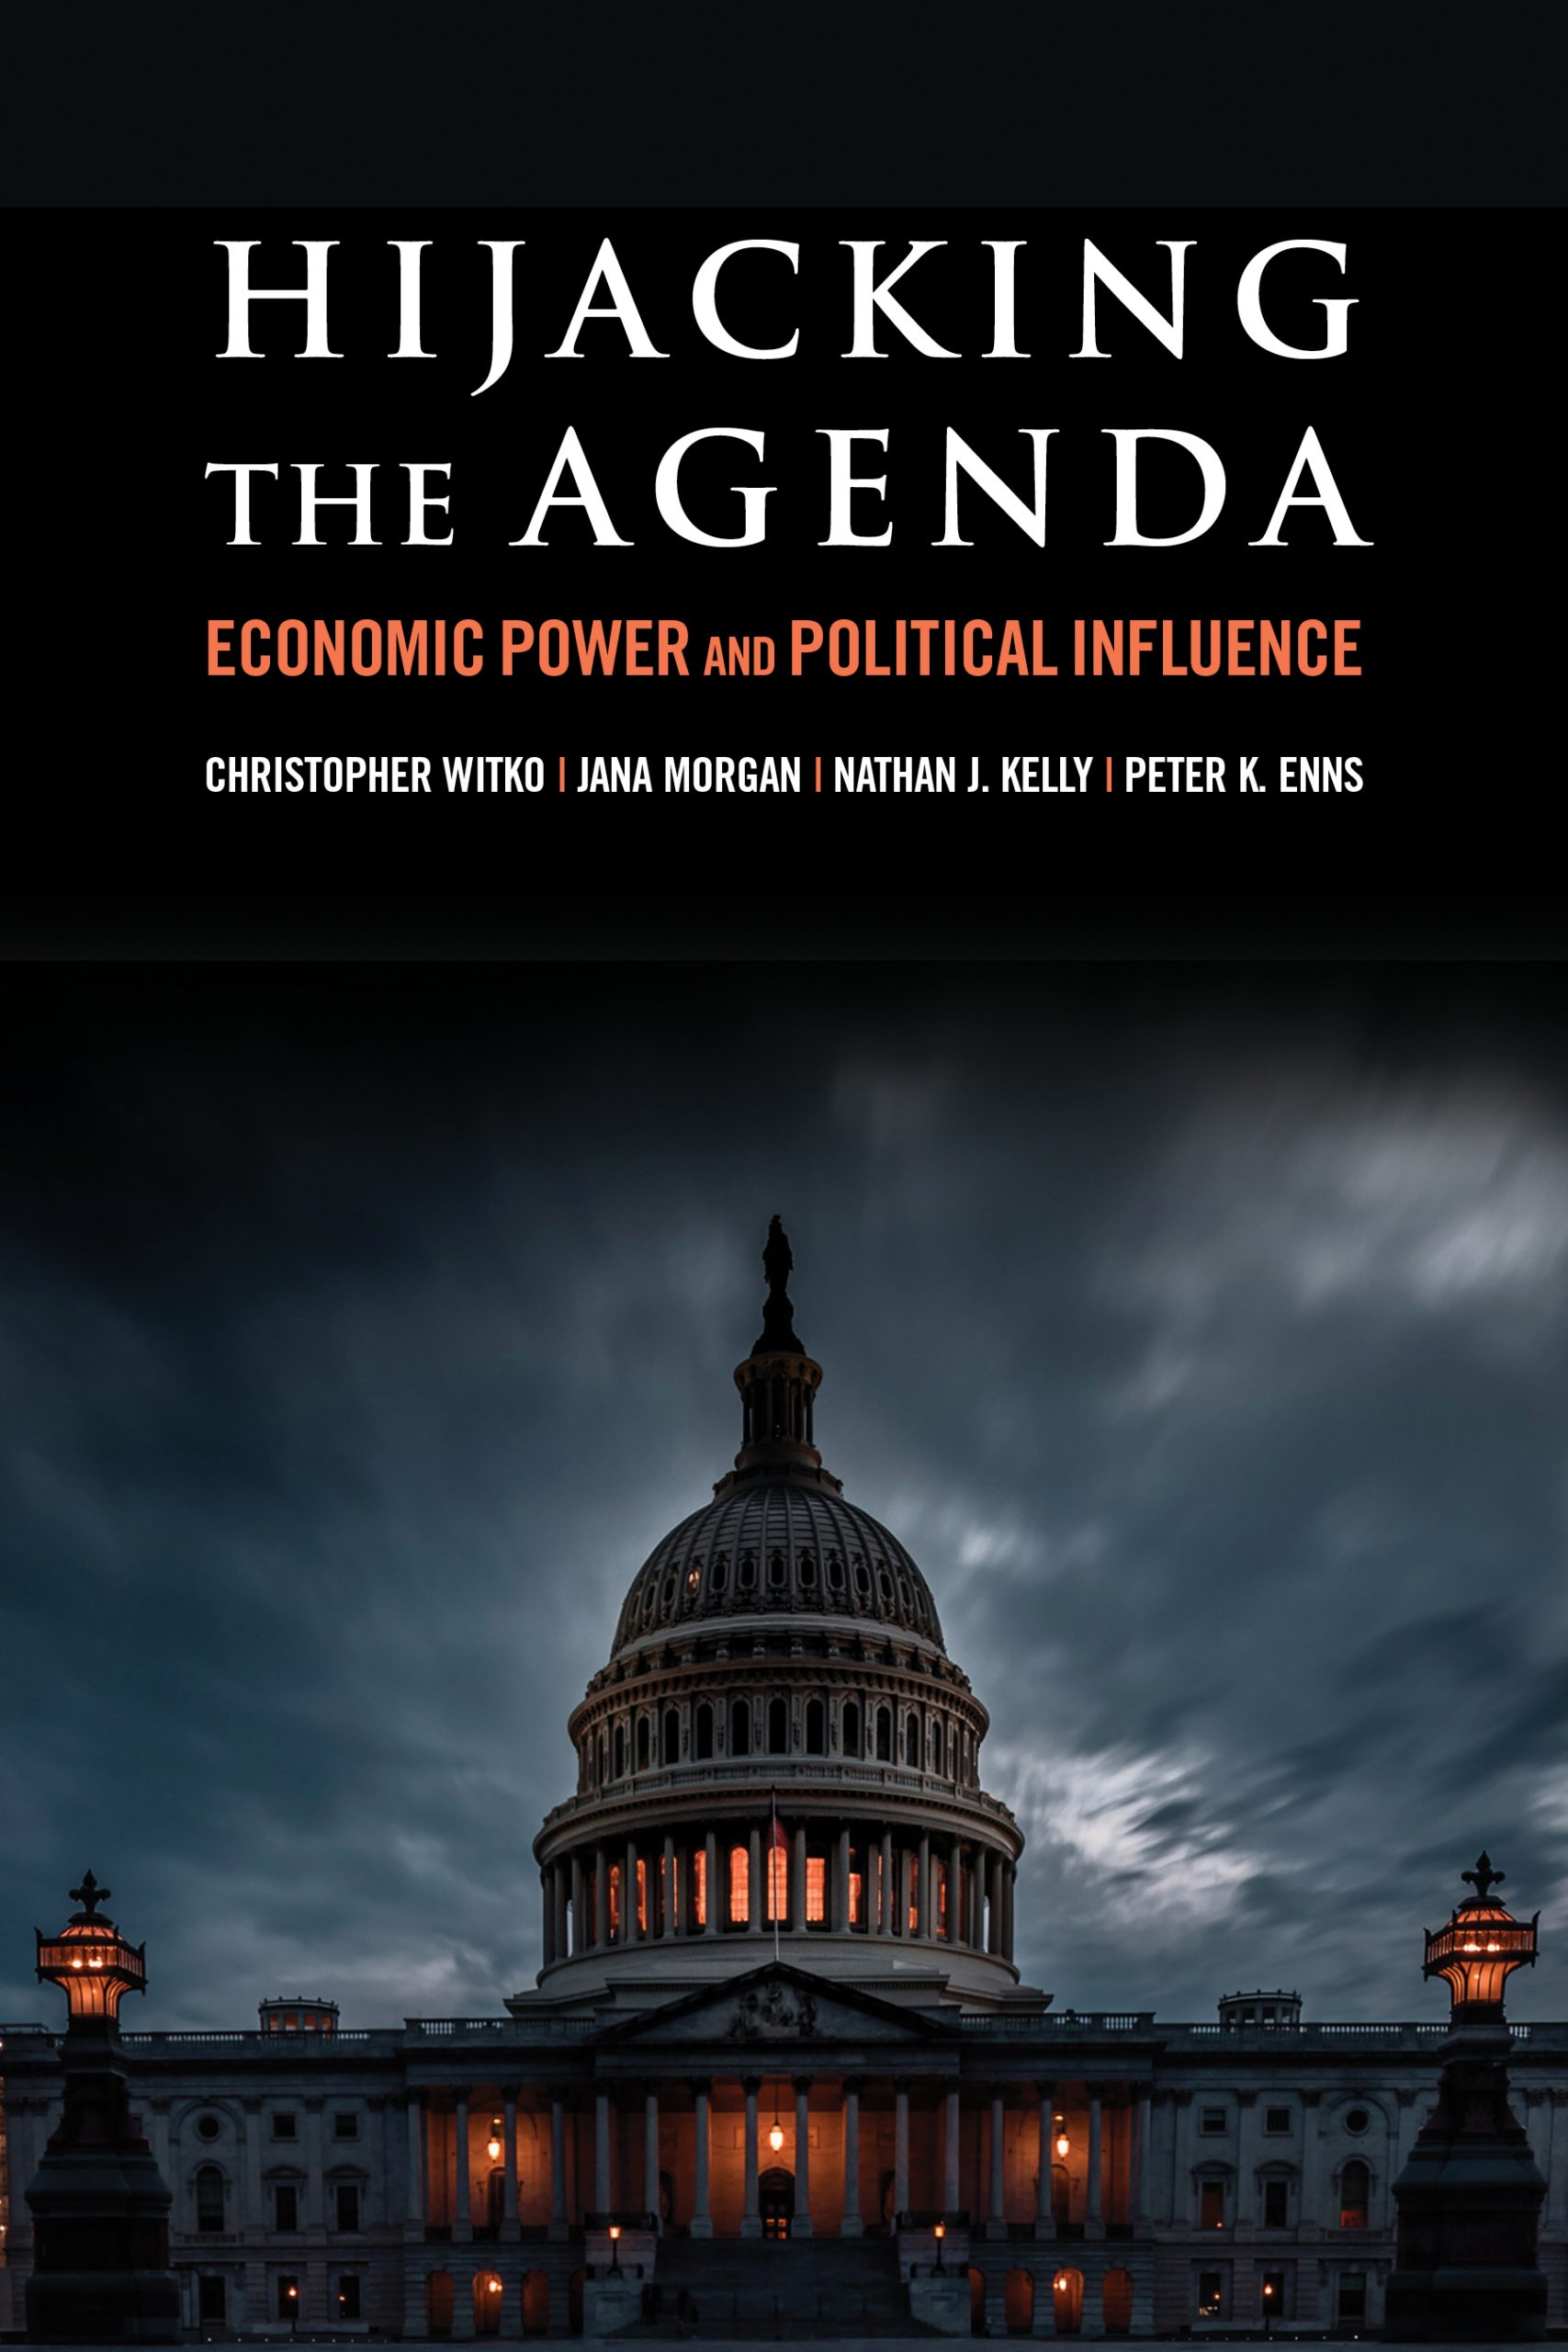 Hijacking the agenda: Economic power and political influence